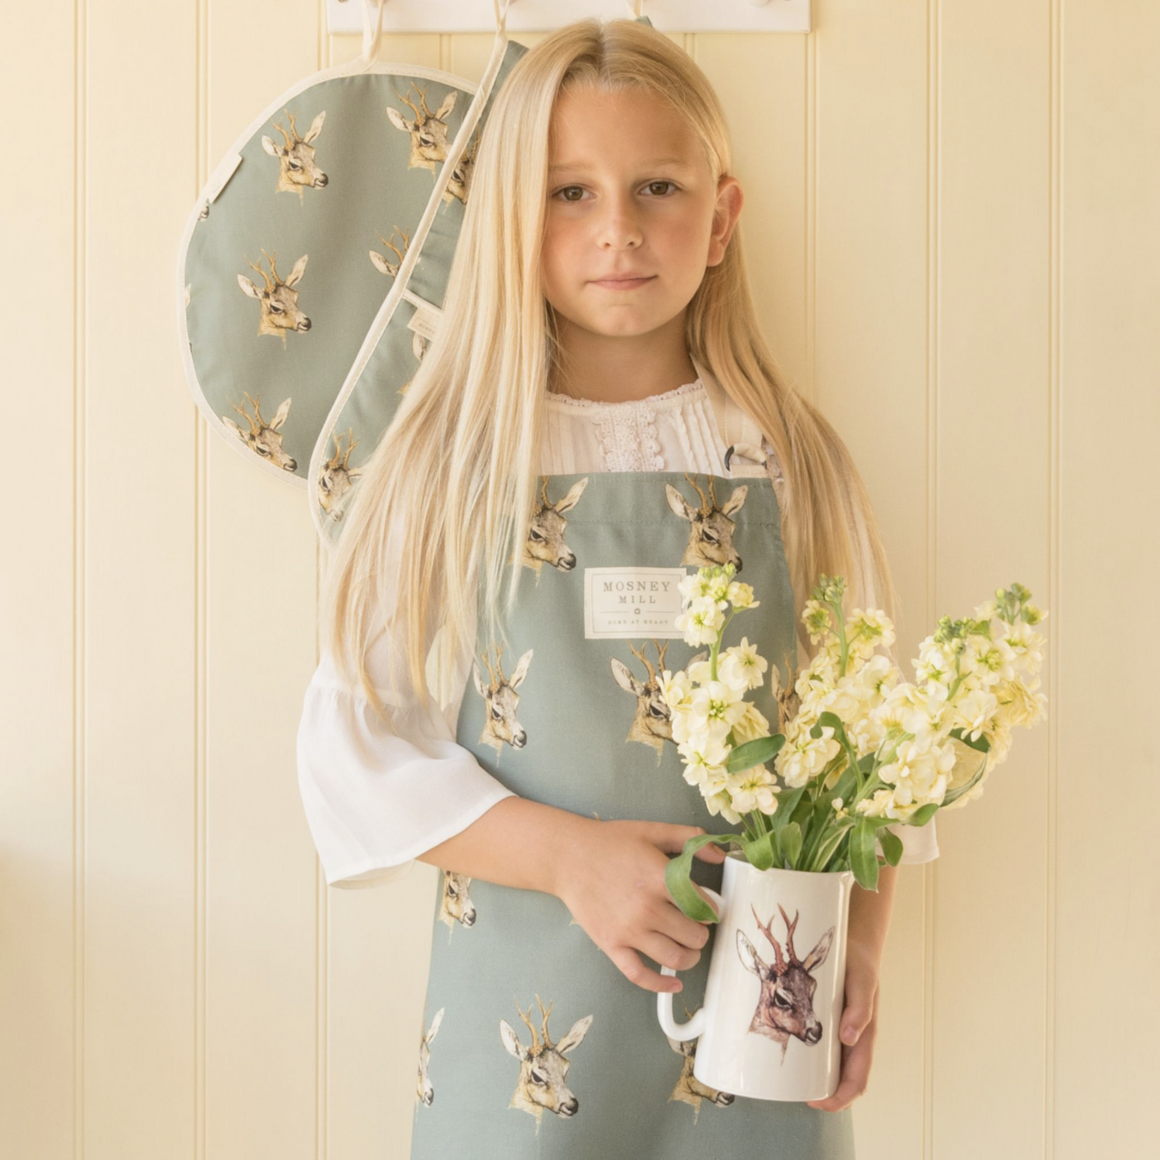 DEER CHILDS APRON